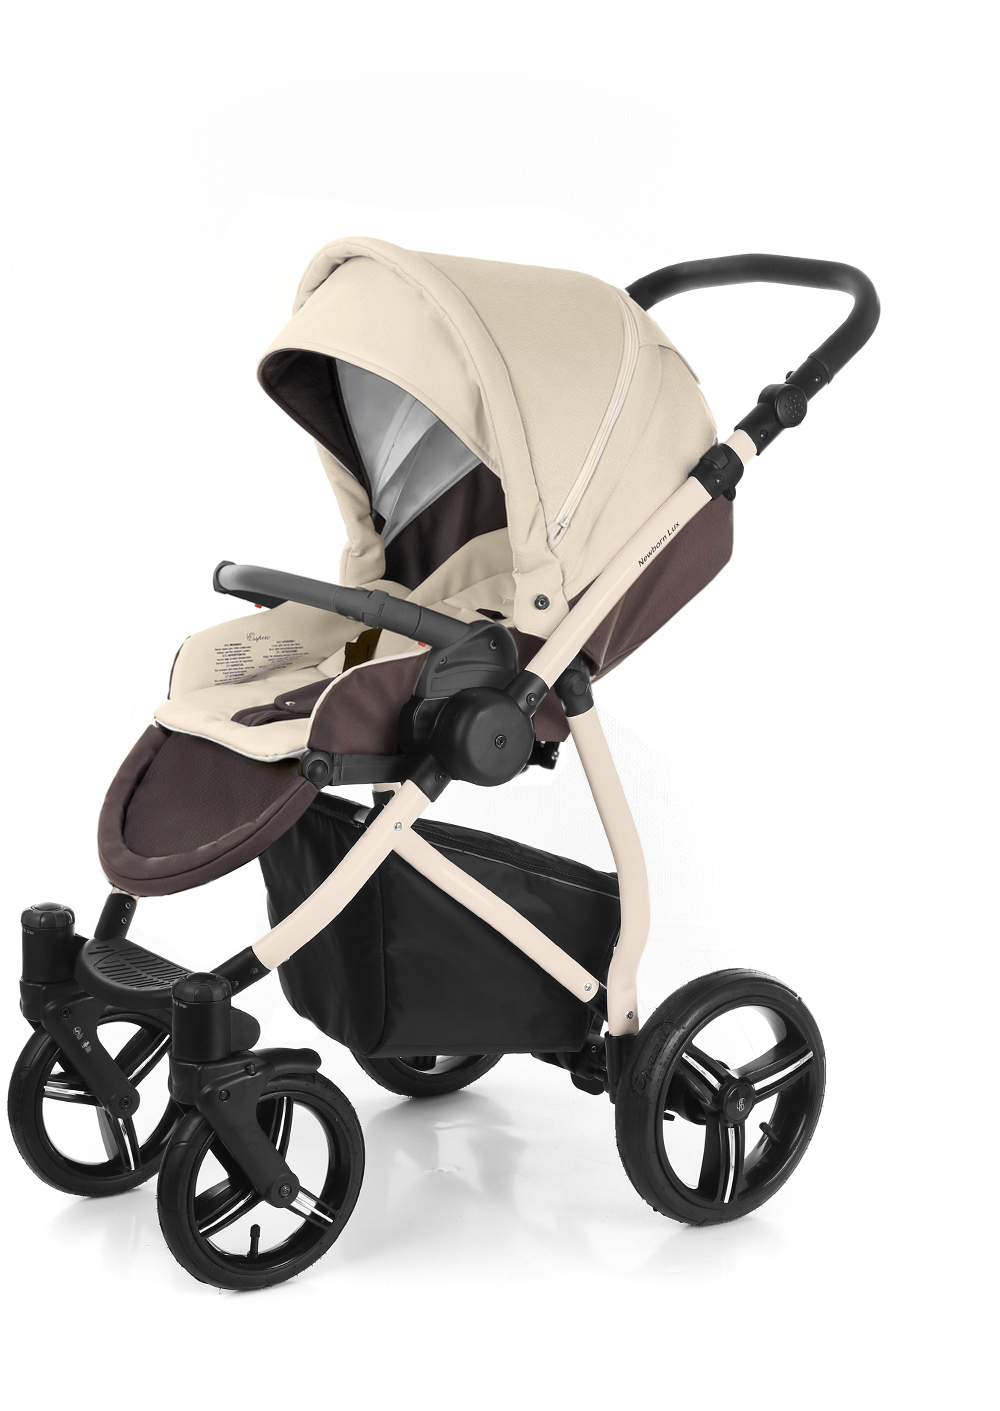 Прогулочная коляска Esspero Grand Newborn Lux (шасси Beige) Cream leatherette